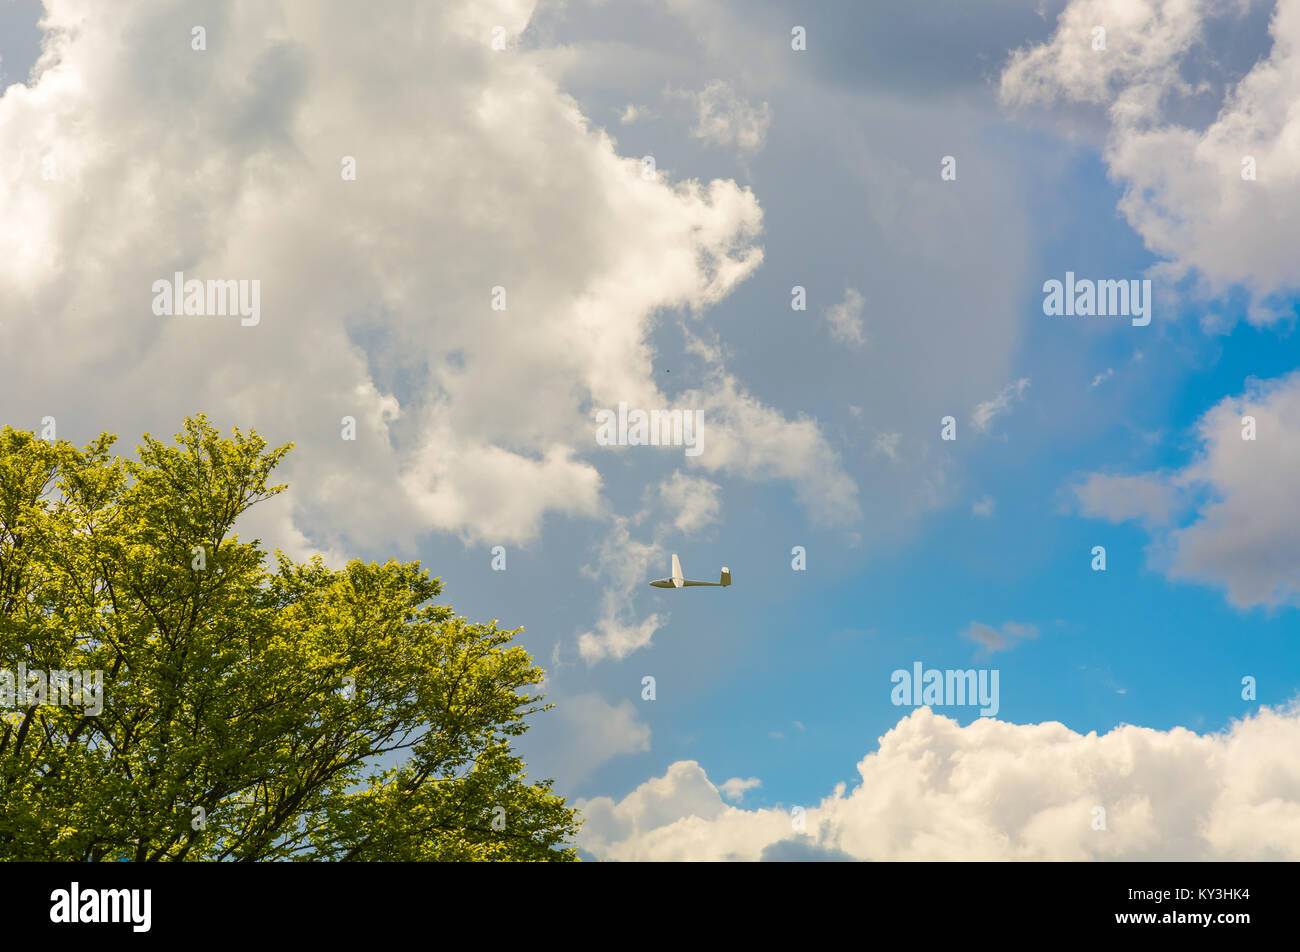 A Glider flying in bleu sky with big white clouds. The glider is a plane that has no engine Stock Photo